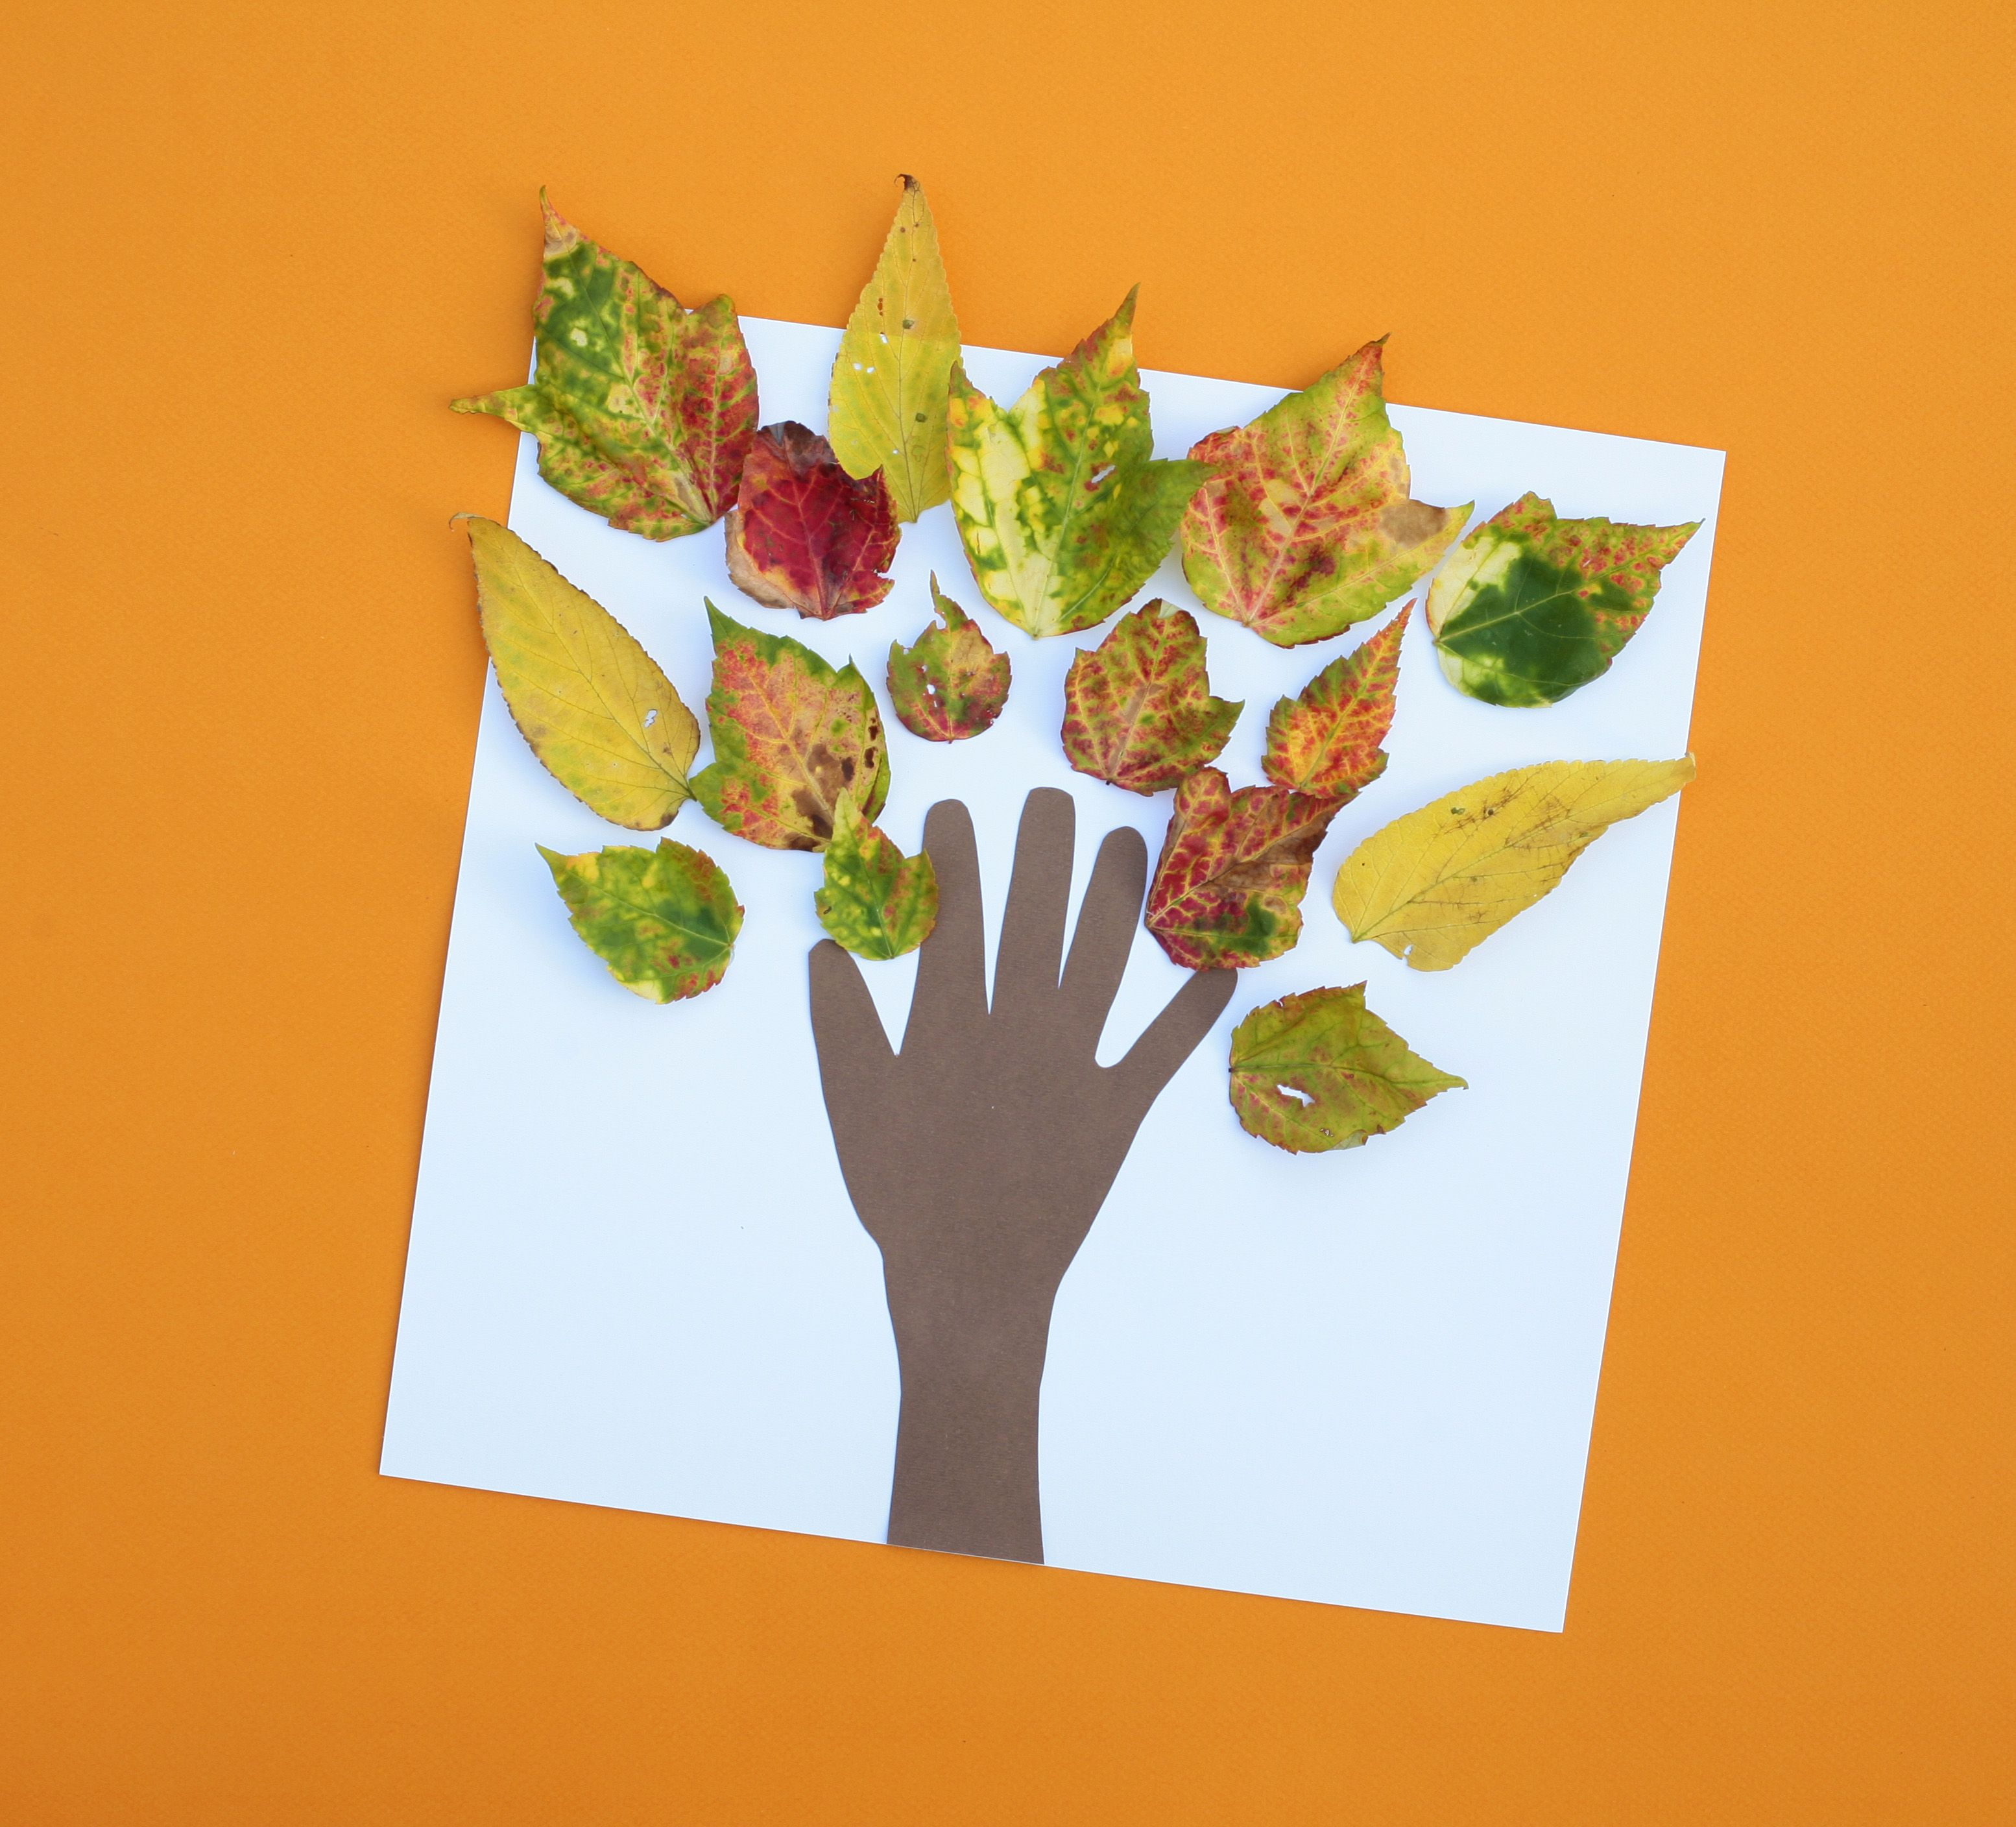 20 Best Leaf Crafts For Fall Diy Decorating Projects With Leaves